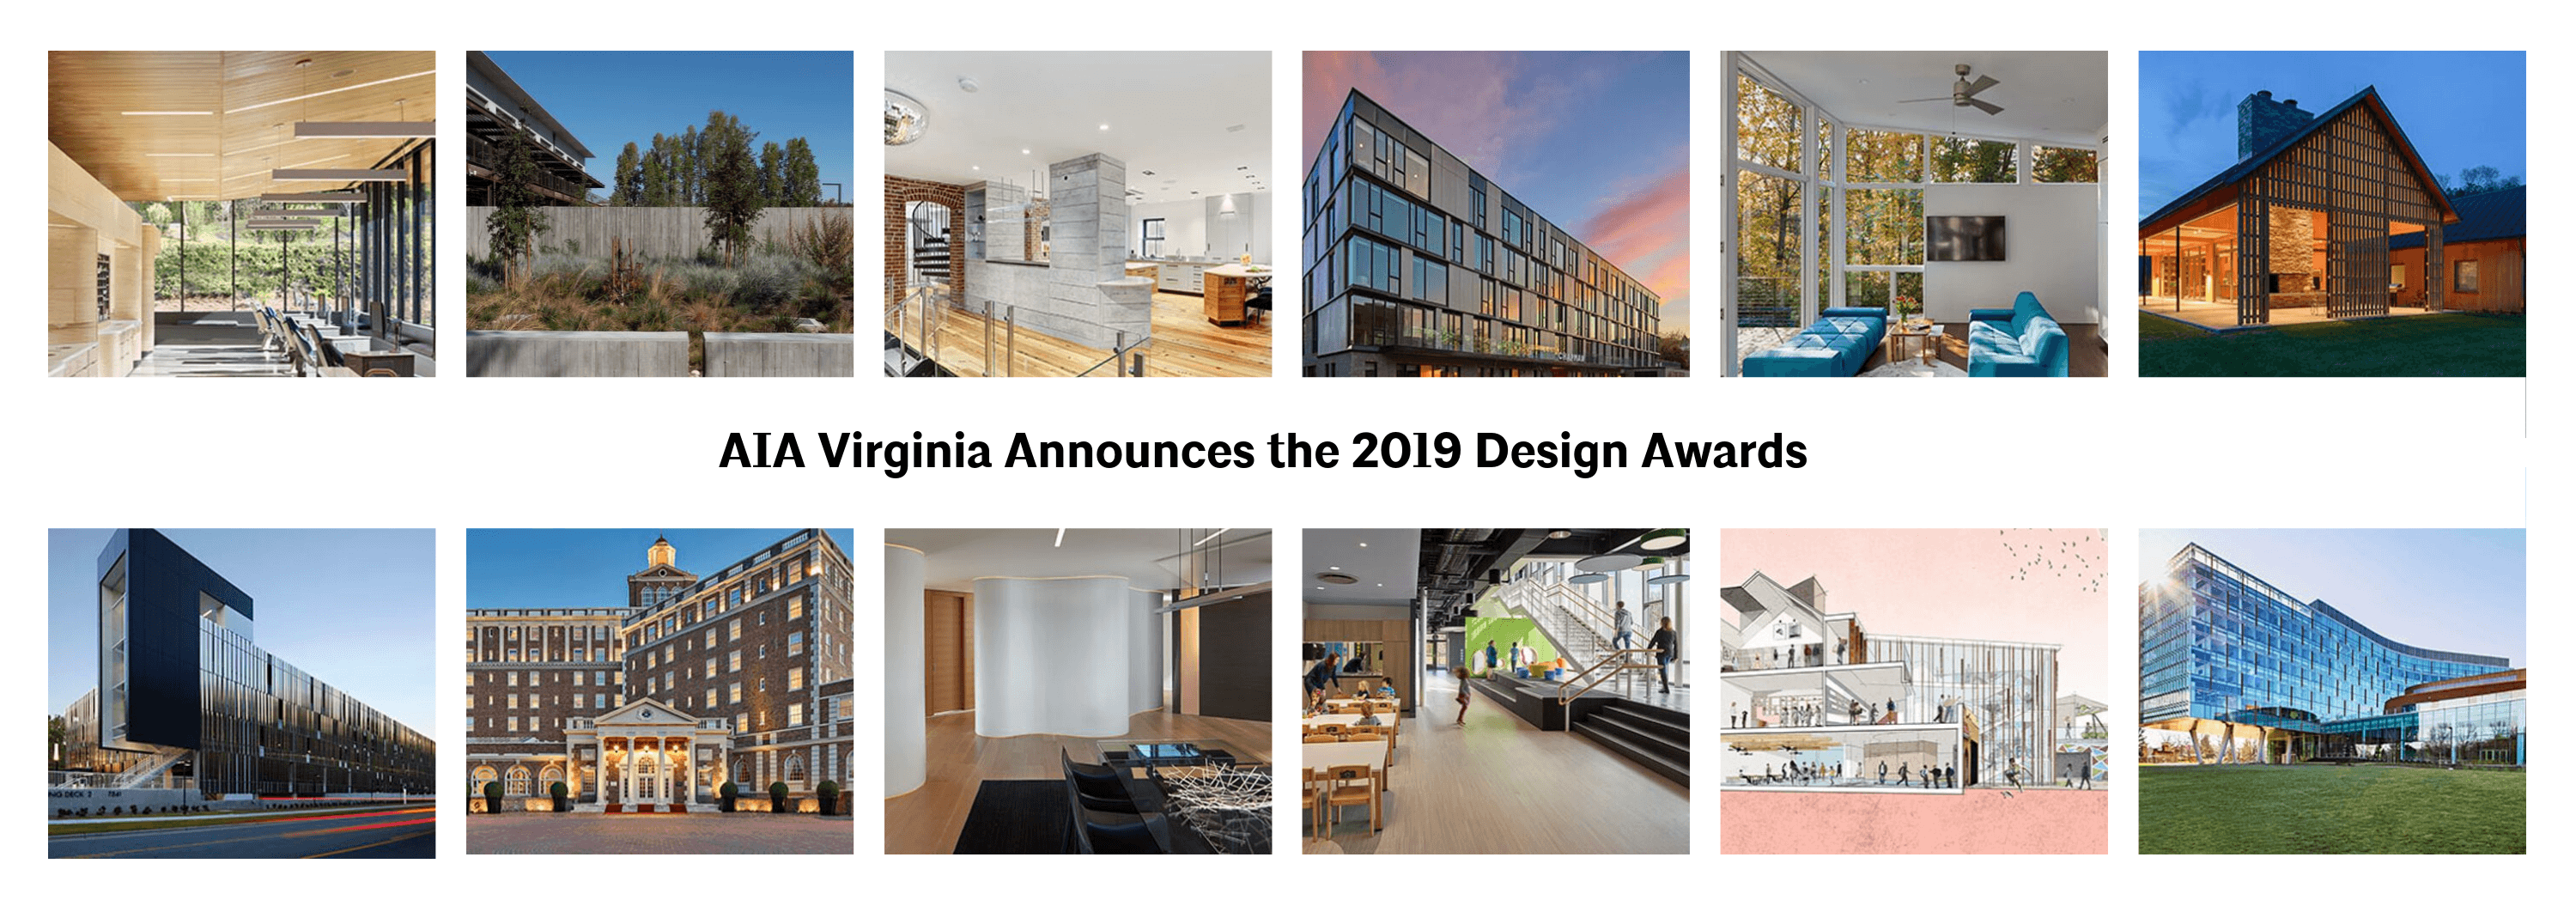 2019 Design Awards Announced